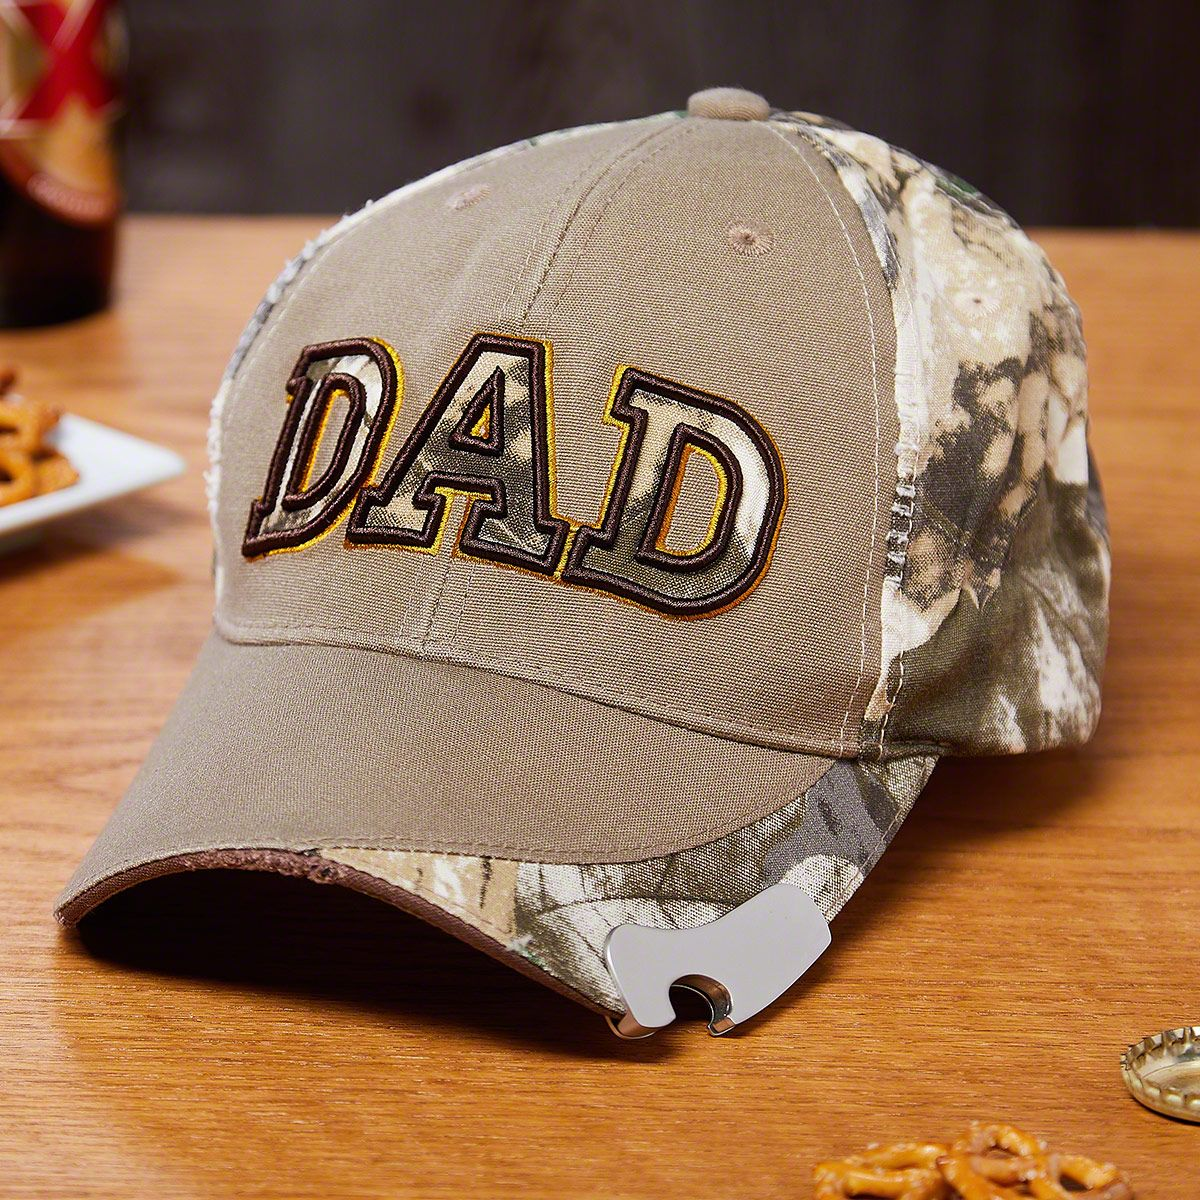 DAD Camouflage Snapback Cap With Bottle Opener